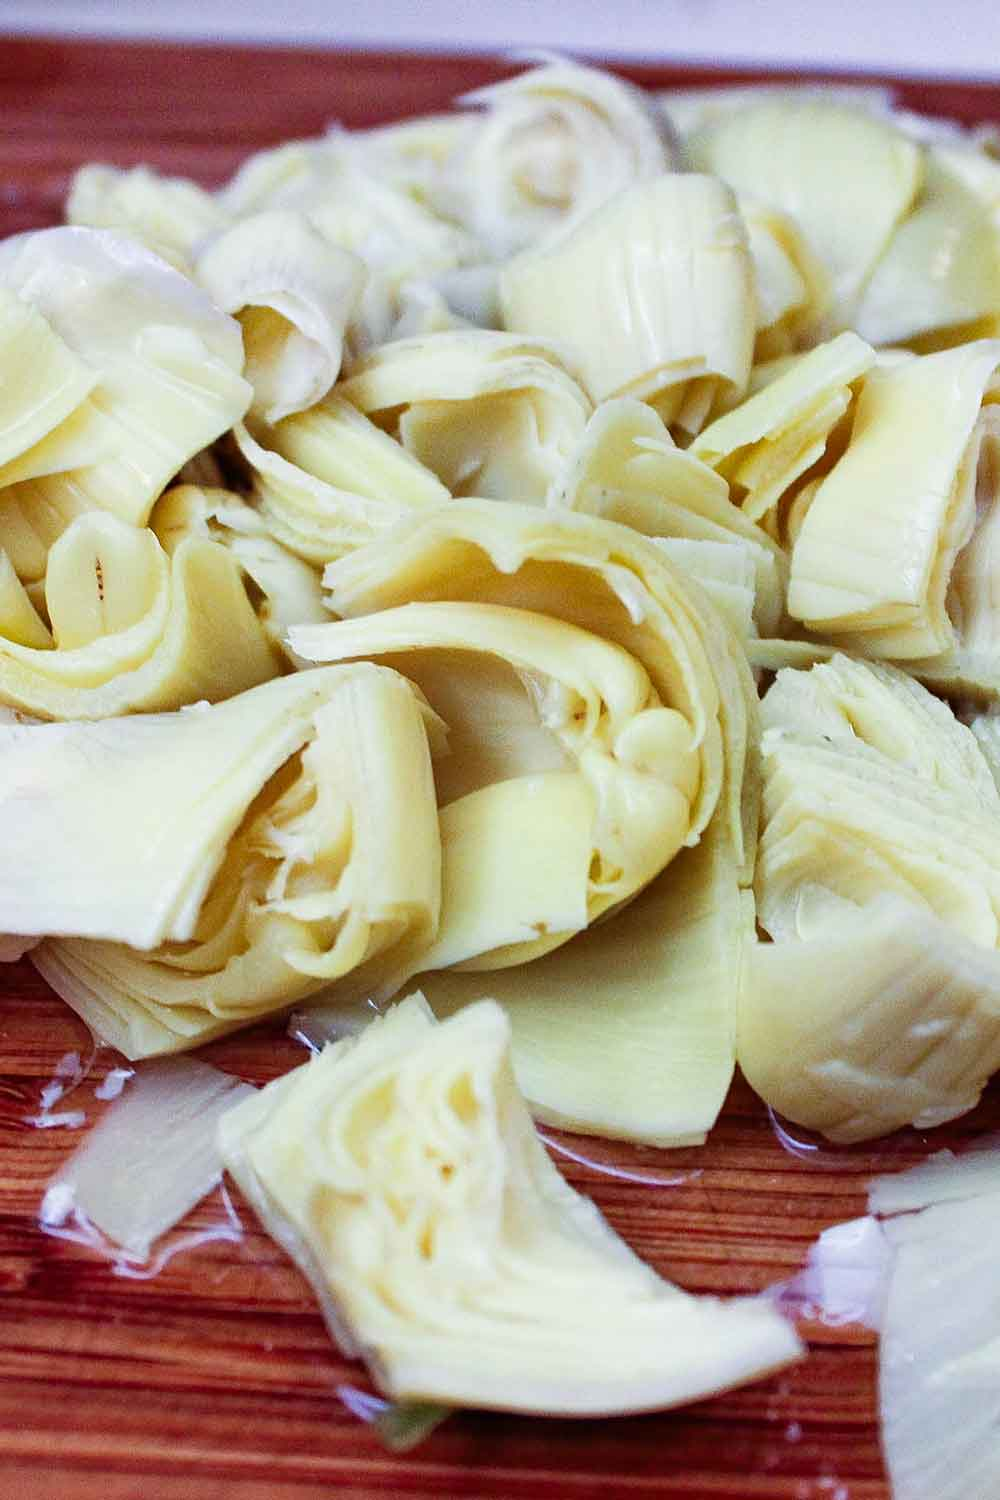 Artichoke hearts on a wooden cutting board.